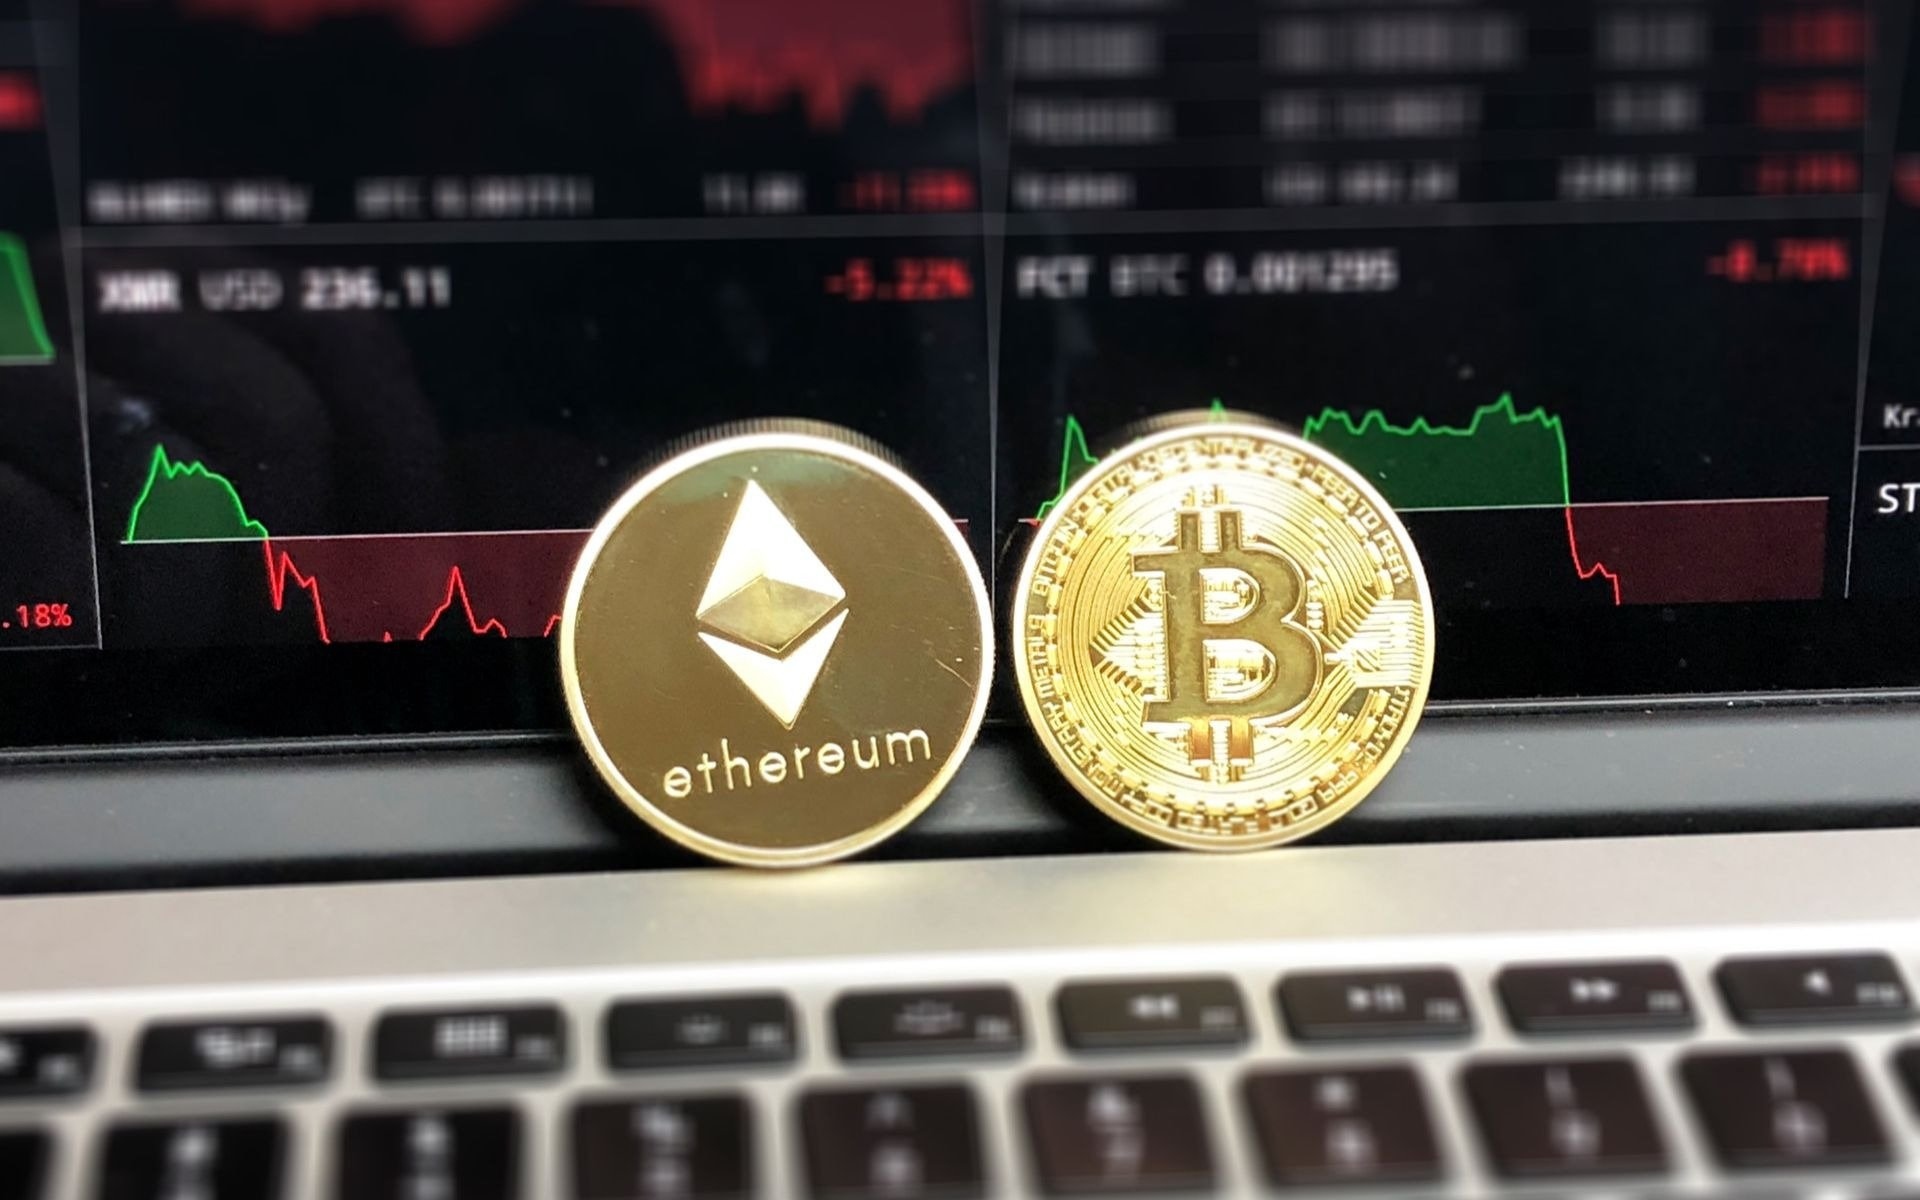 Ethereum Price Analysis: ETH Shadowing Bitcoin Price Action